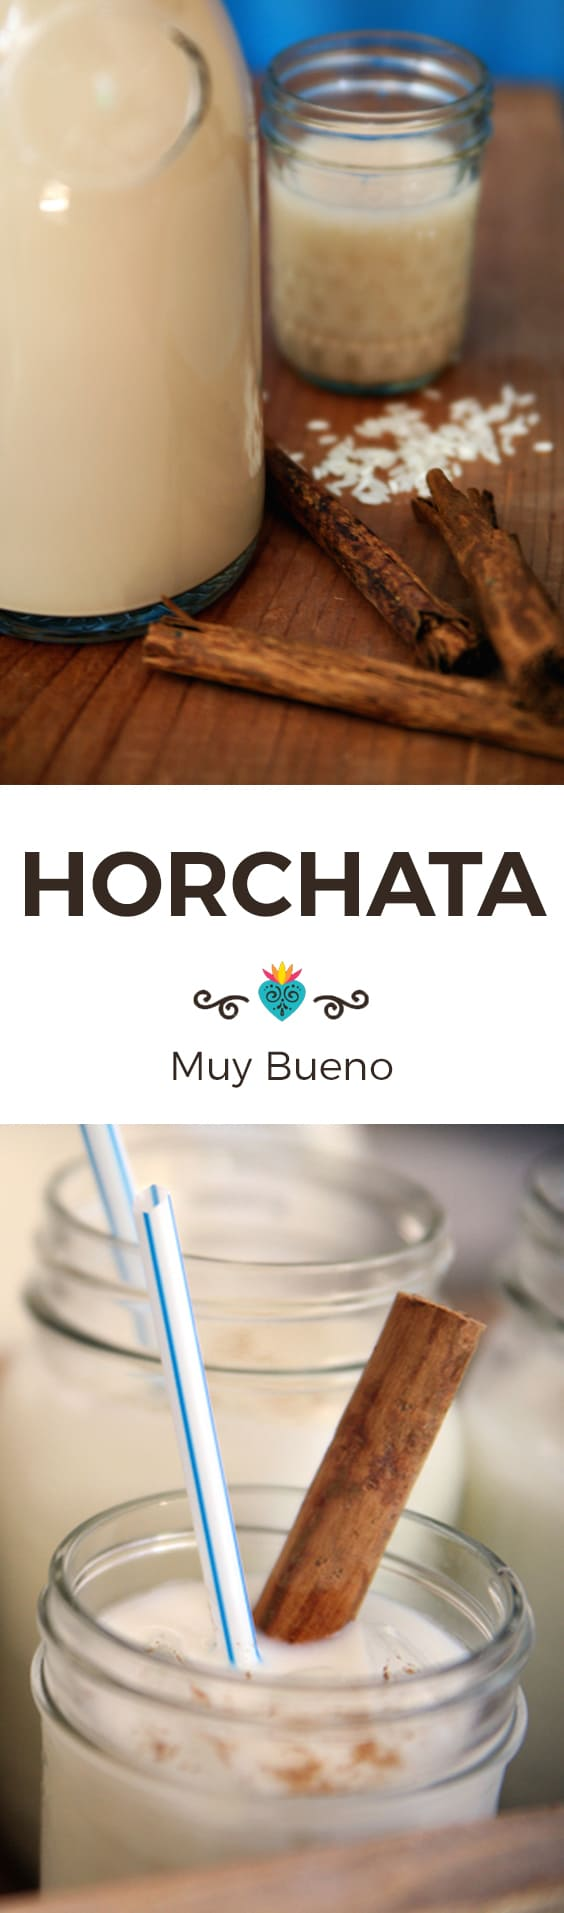 Horchata collage with text overlay